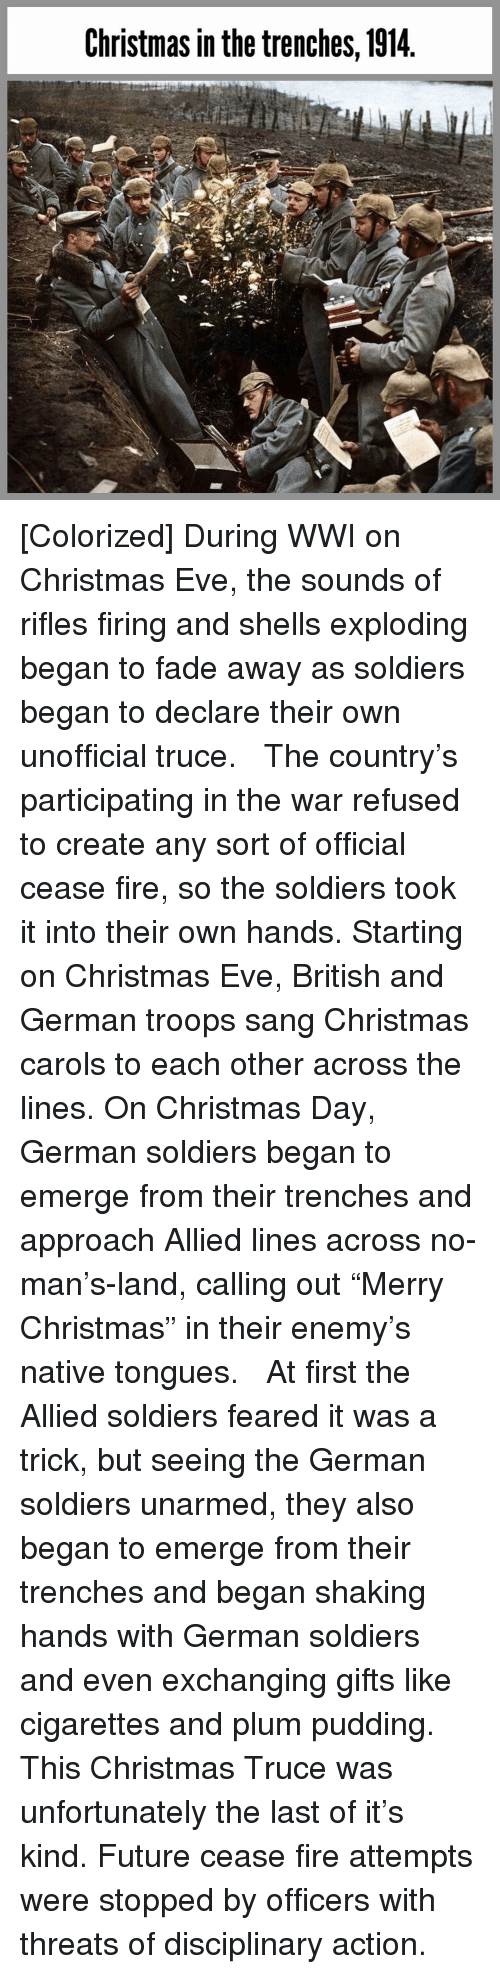 """Carols: Christmas in the trenches, 1914 [Colorized] During WWI on Christmas Eve, the sounds of rifles firing and shells exploding began to fade away as soldiers began to declare their own unofficial truce.   The country's participating in the war refused to create any sort of official cease fire, so the soldiers took it into their own hands. Starting on Christmas Eve, British and German troops sang Christmas carols to each other across the lines. On Christmas Day, German soldiers began to emerge from their trenches and approach Allied lines across no-man's-land, calling out """"Merry Christmas"""" in their enemy's native tongues.   At first the Allied soldiers feared it was a trick, but seeing the German soldiers unarmed, they also began to emerge from their trenches and began shaking hands with German soldiers and even exchanging gifts like cigarettes and plum pudding.   This Christmas Truce was unfortunately the last of it's kind. Future cease fire attempts were stopped by officers with threats of disciplinary action."""